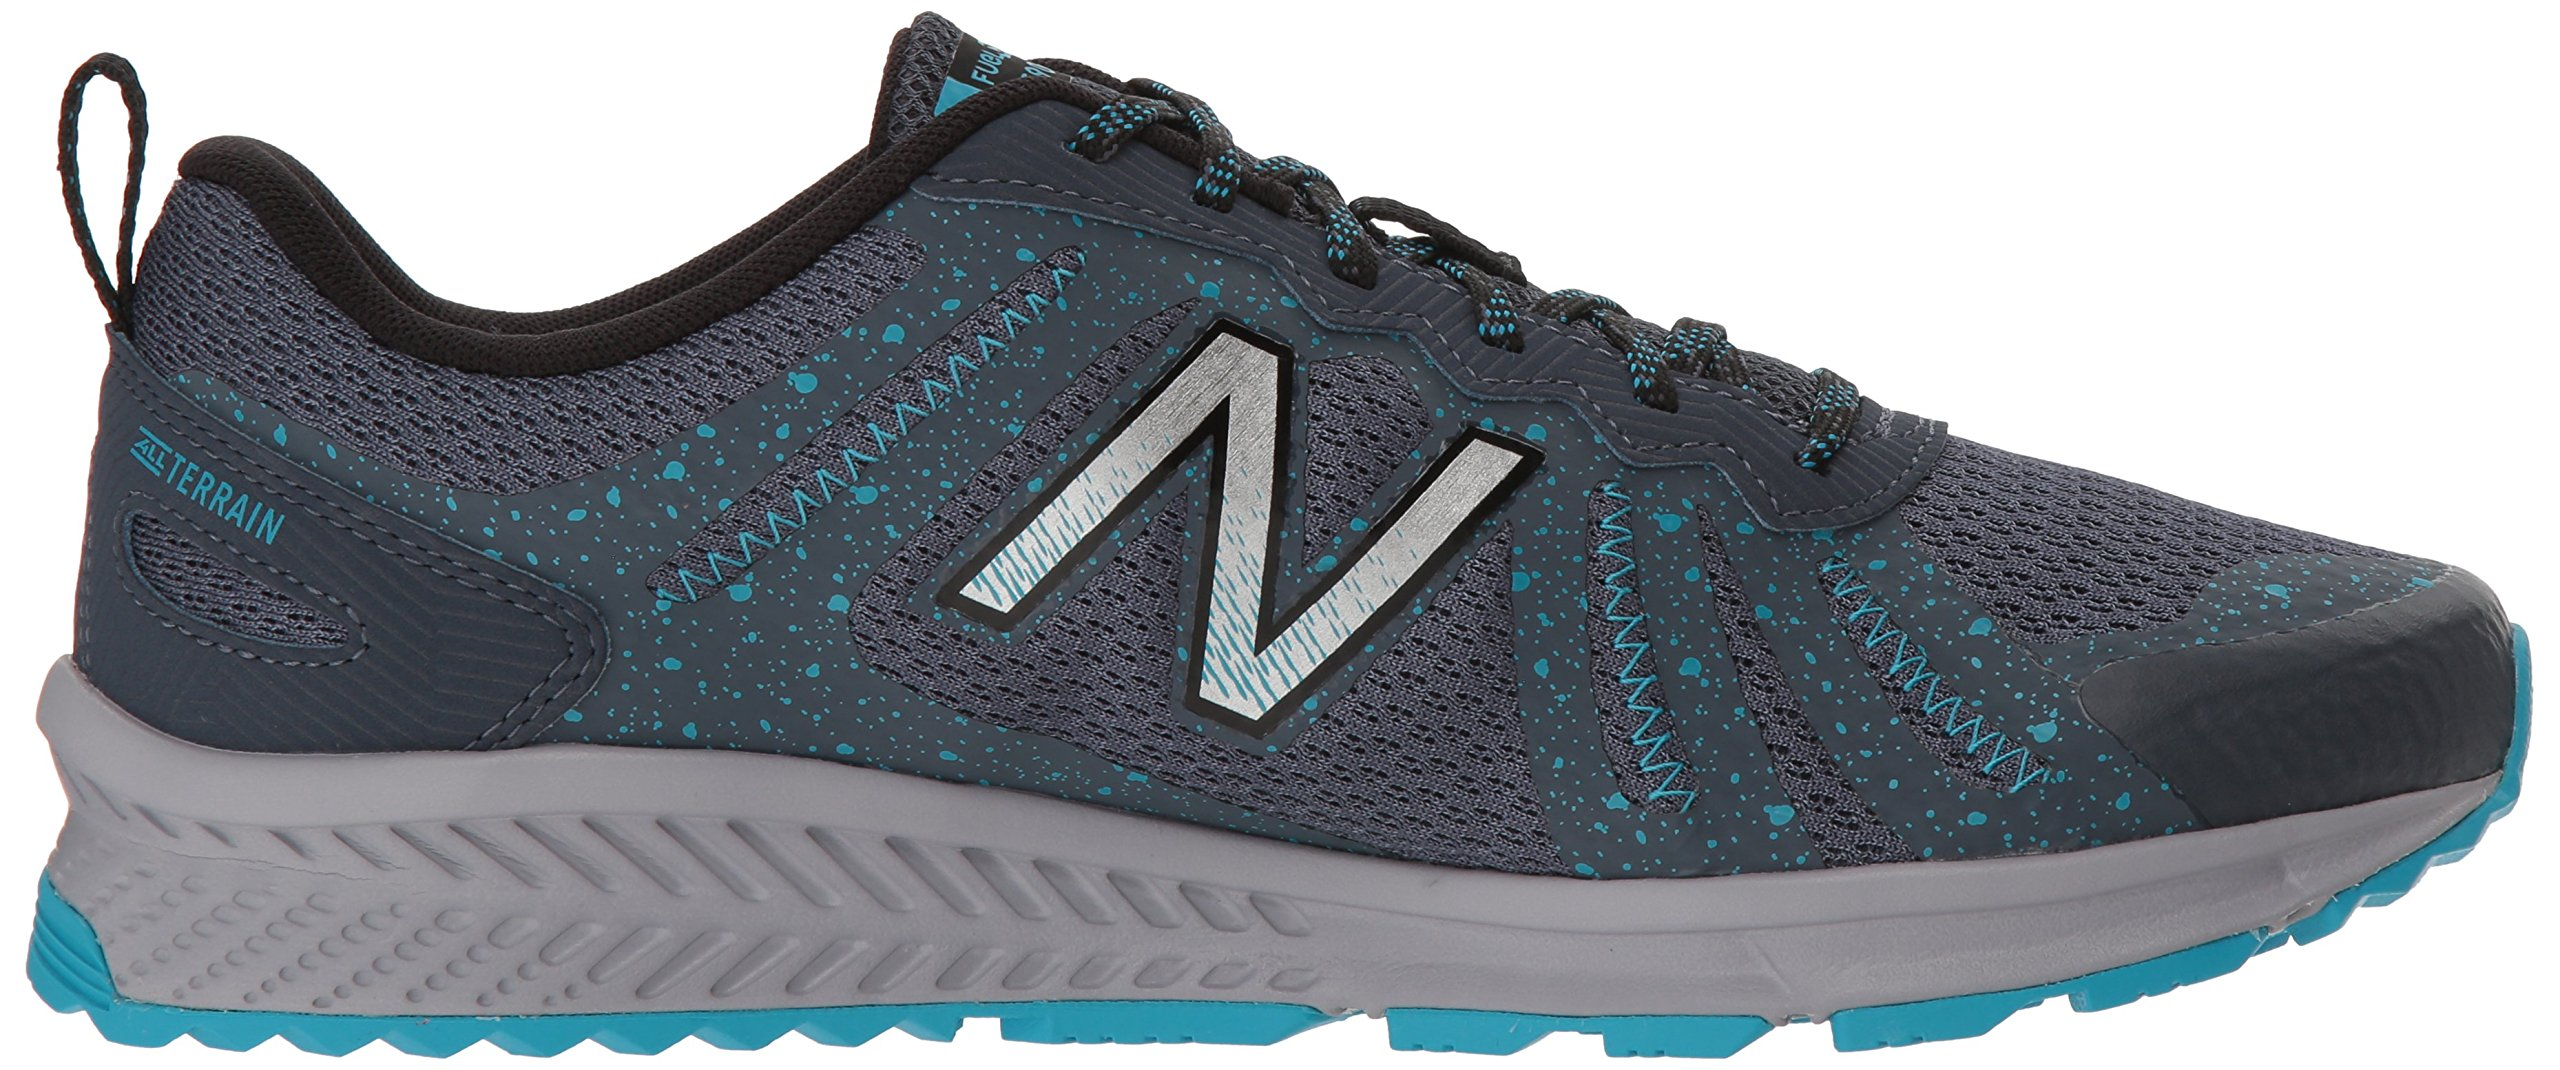 New Balance Women's 590v4 FuelCore Trail Running Shoe Dark Grey 6 D US by New Balance (Image #6)